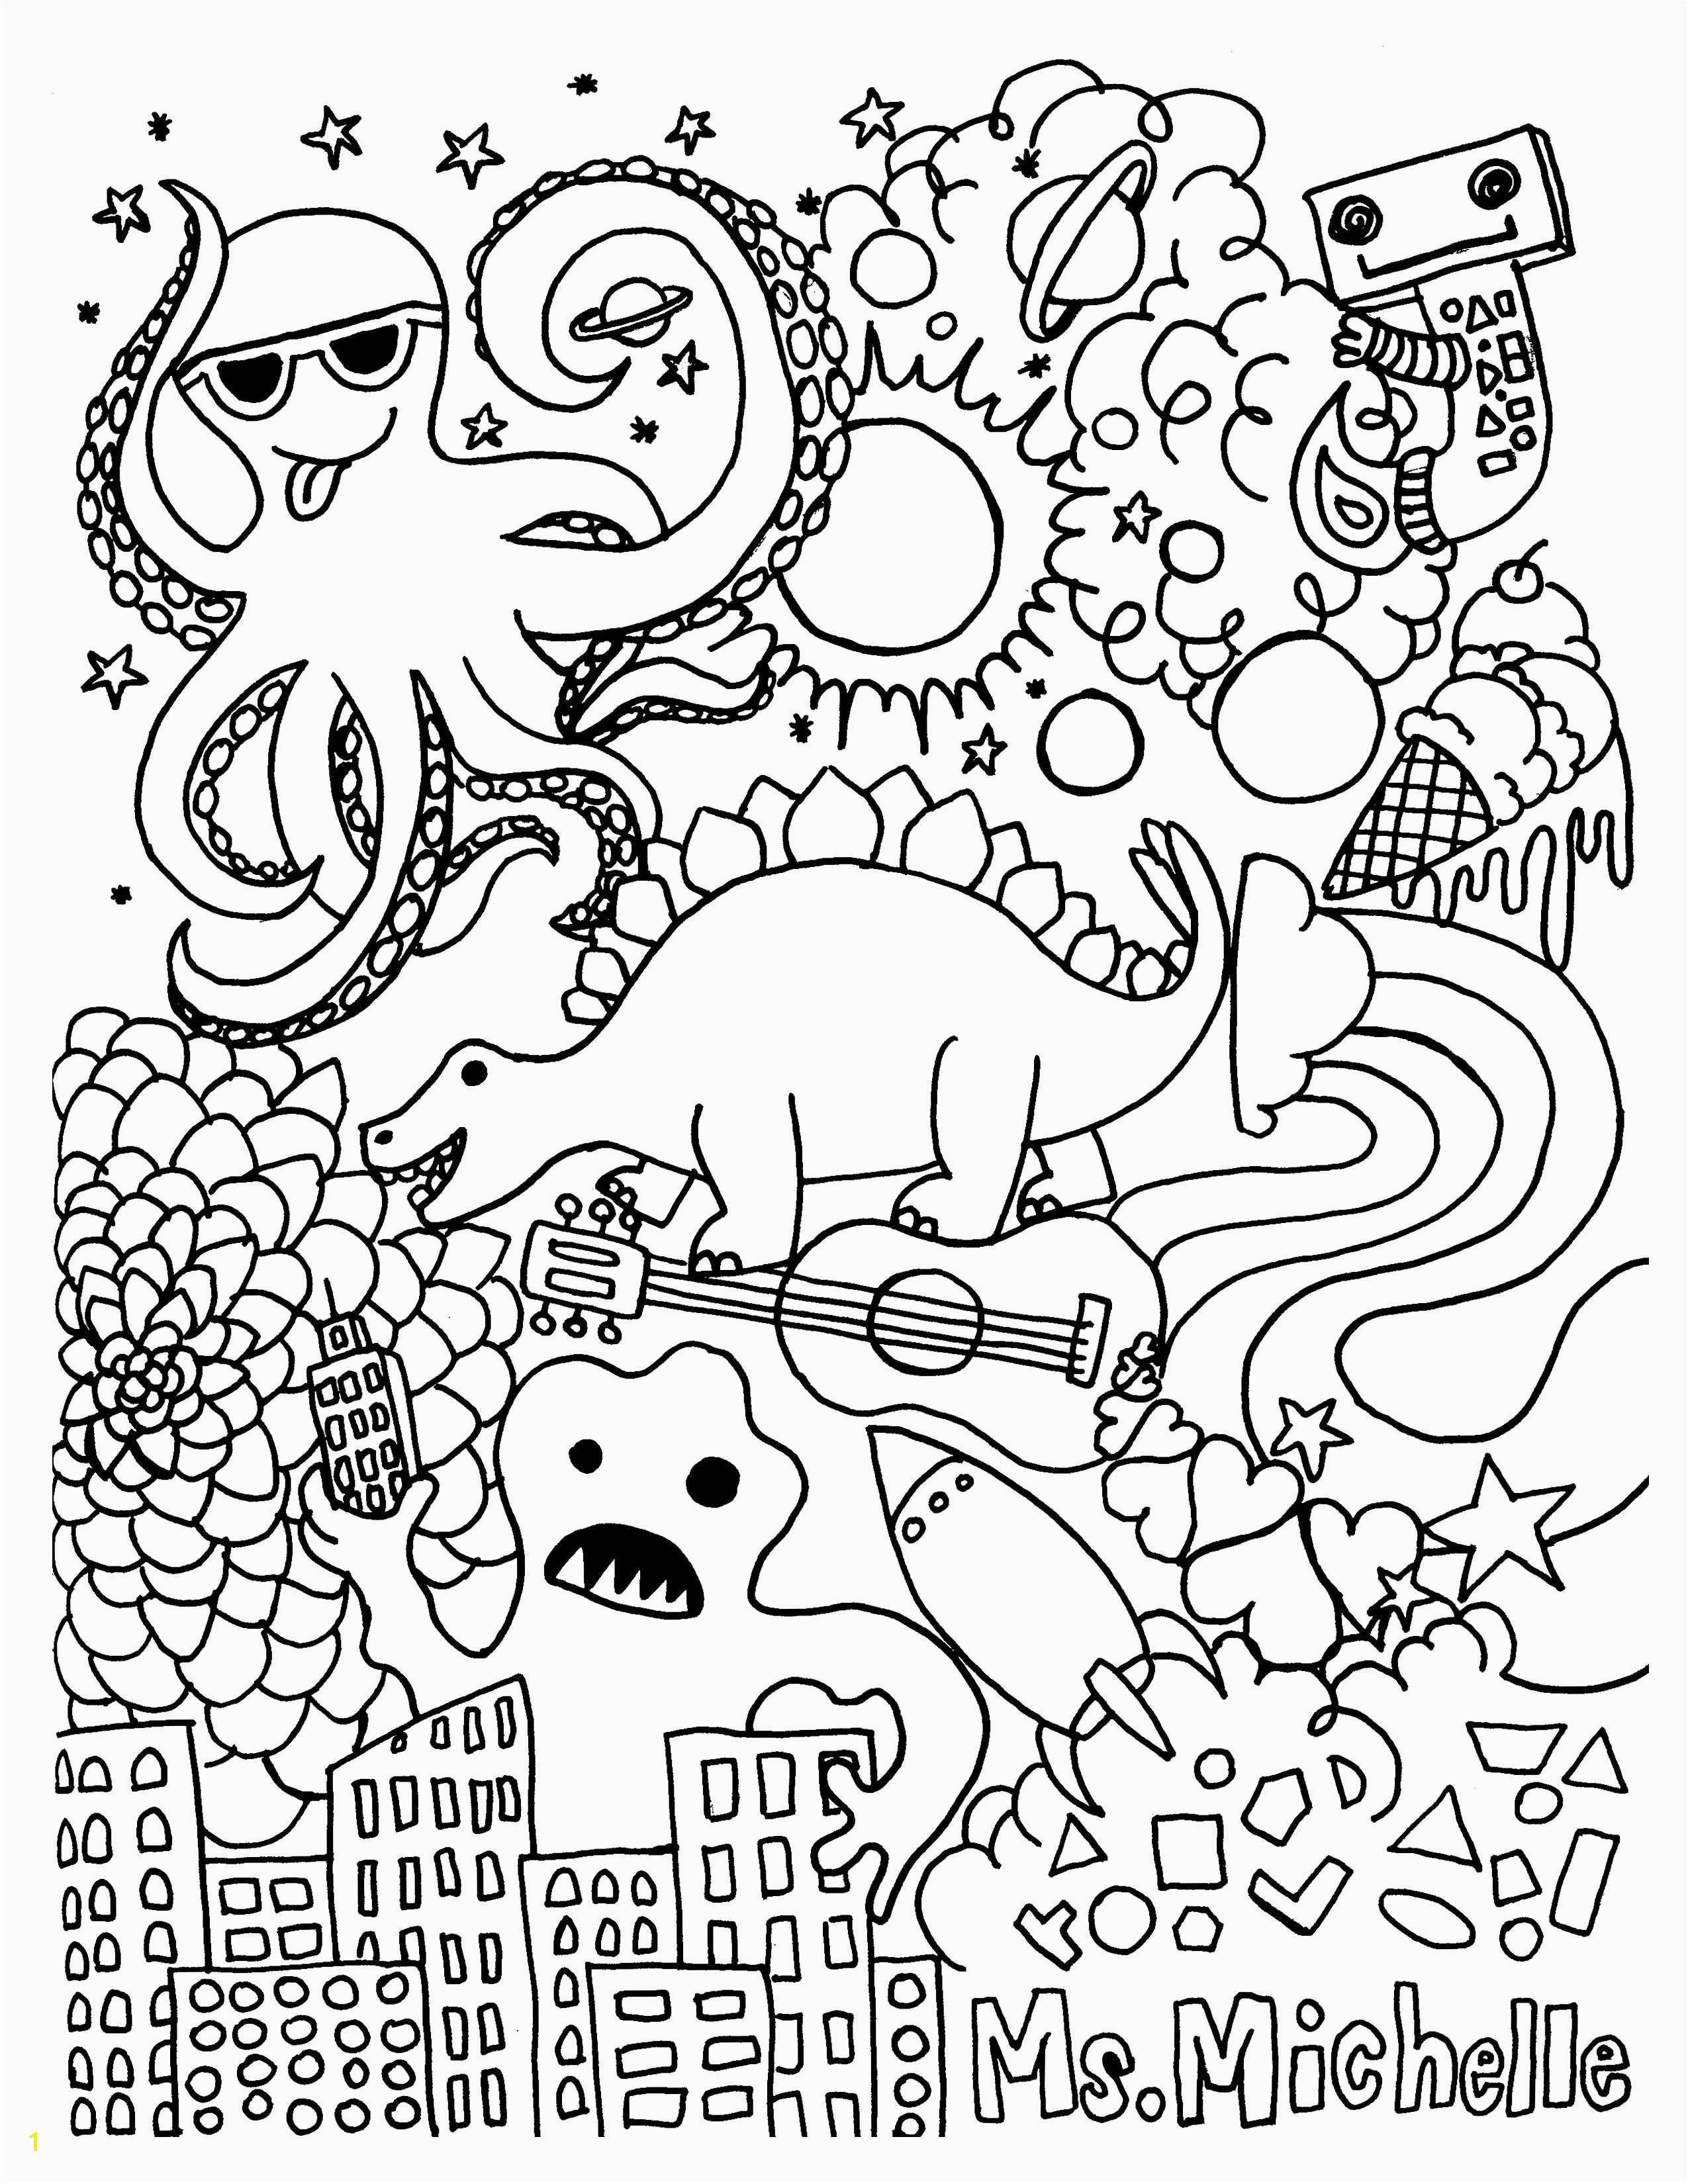 Free Sunday School Coloring Pages for Easter Adult Bible Coloring Pages Coloring Chrsistmas